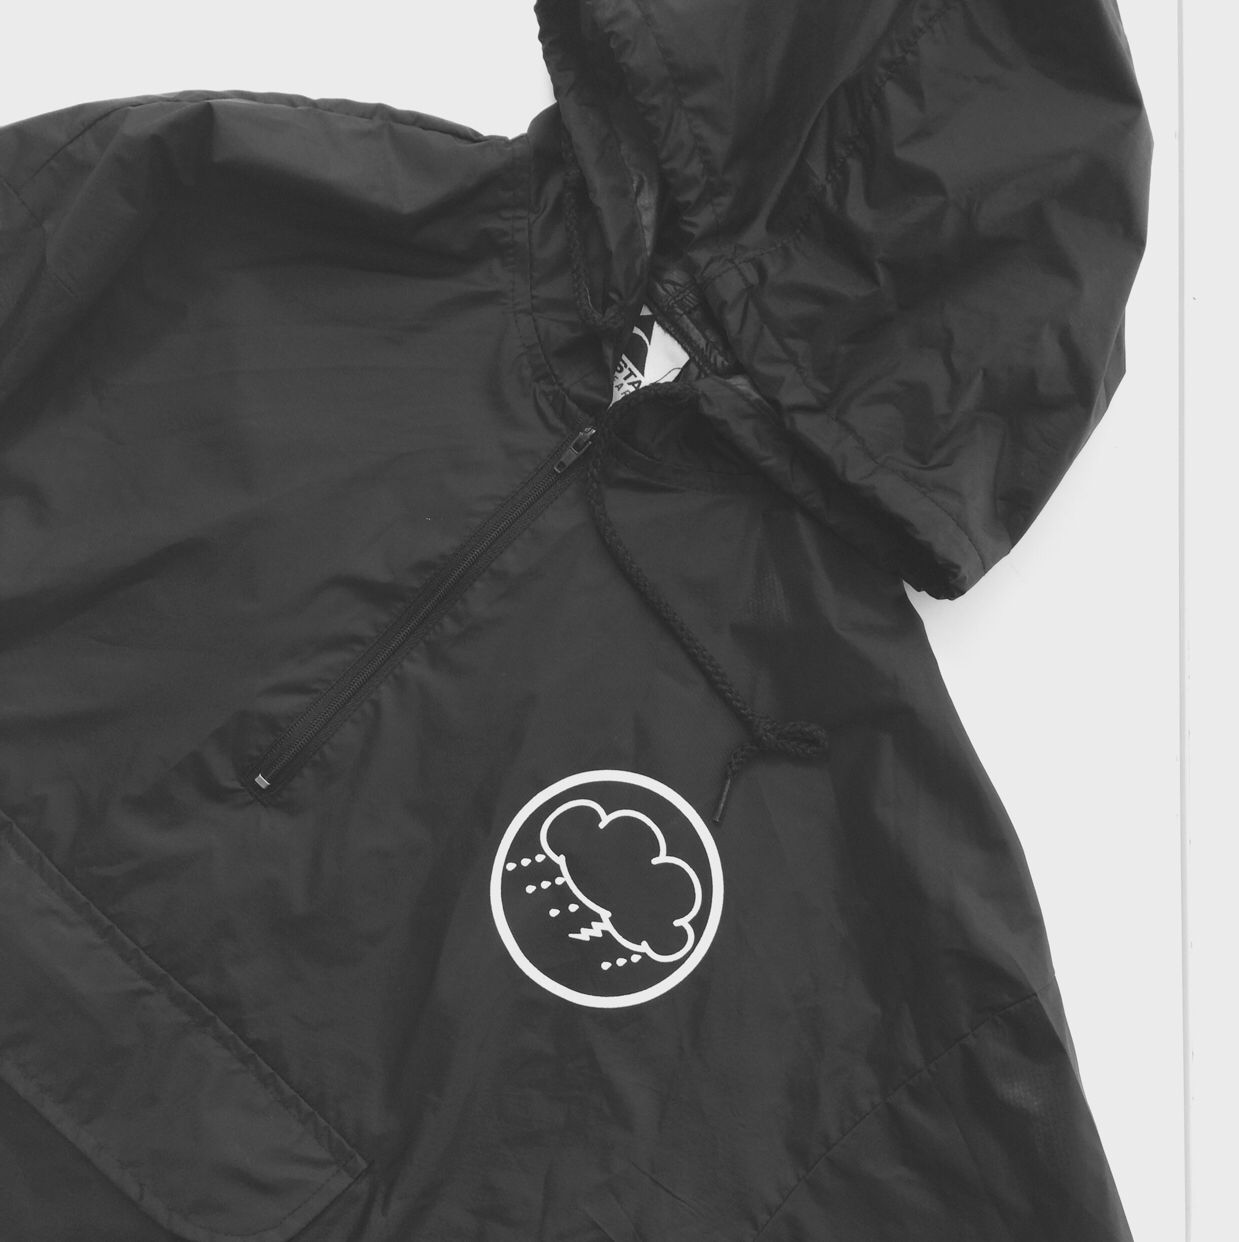 Printing On Windbreakers Now Offering Screen Printing On Our Packable Windbreaker Jackets Don T Like Those Coach Jacket Screen Printing Windbreaker Jacket